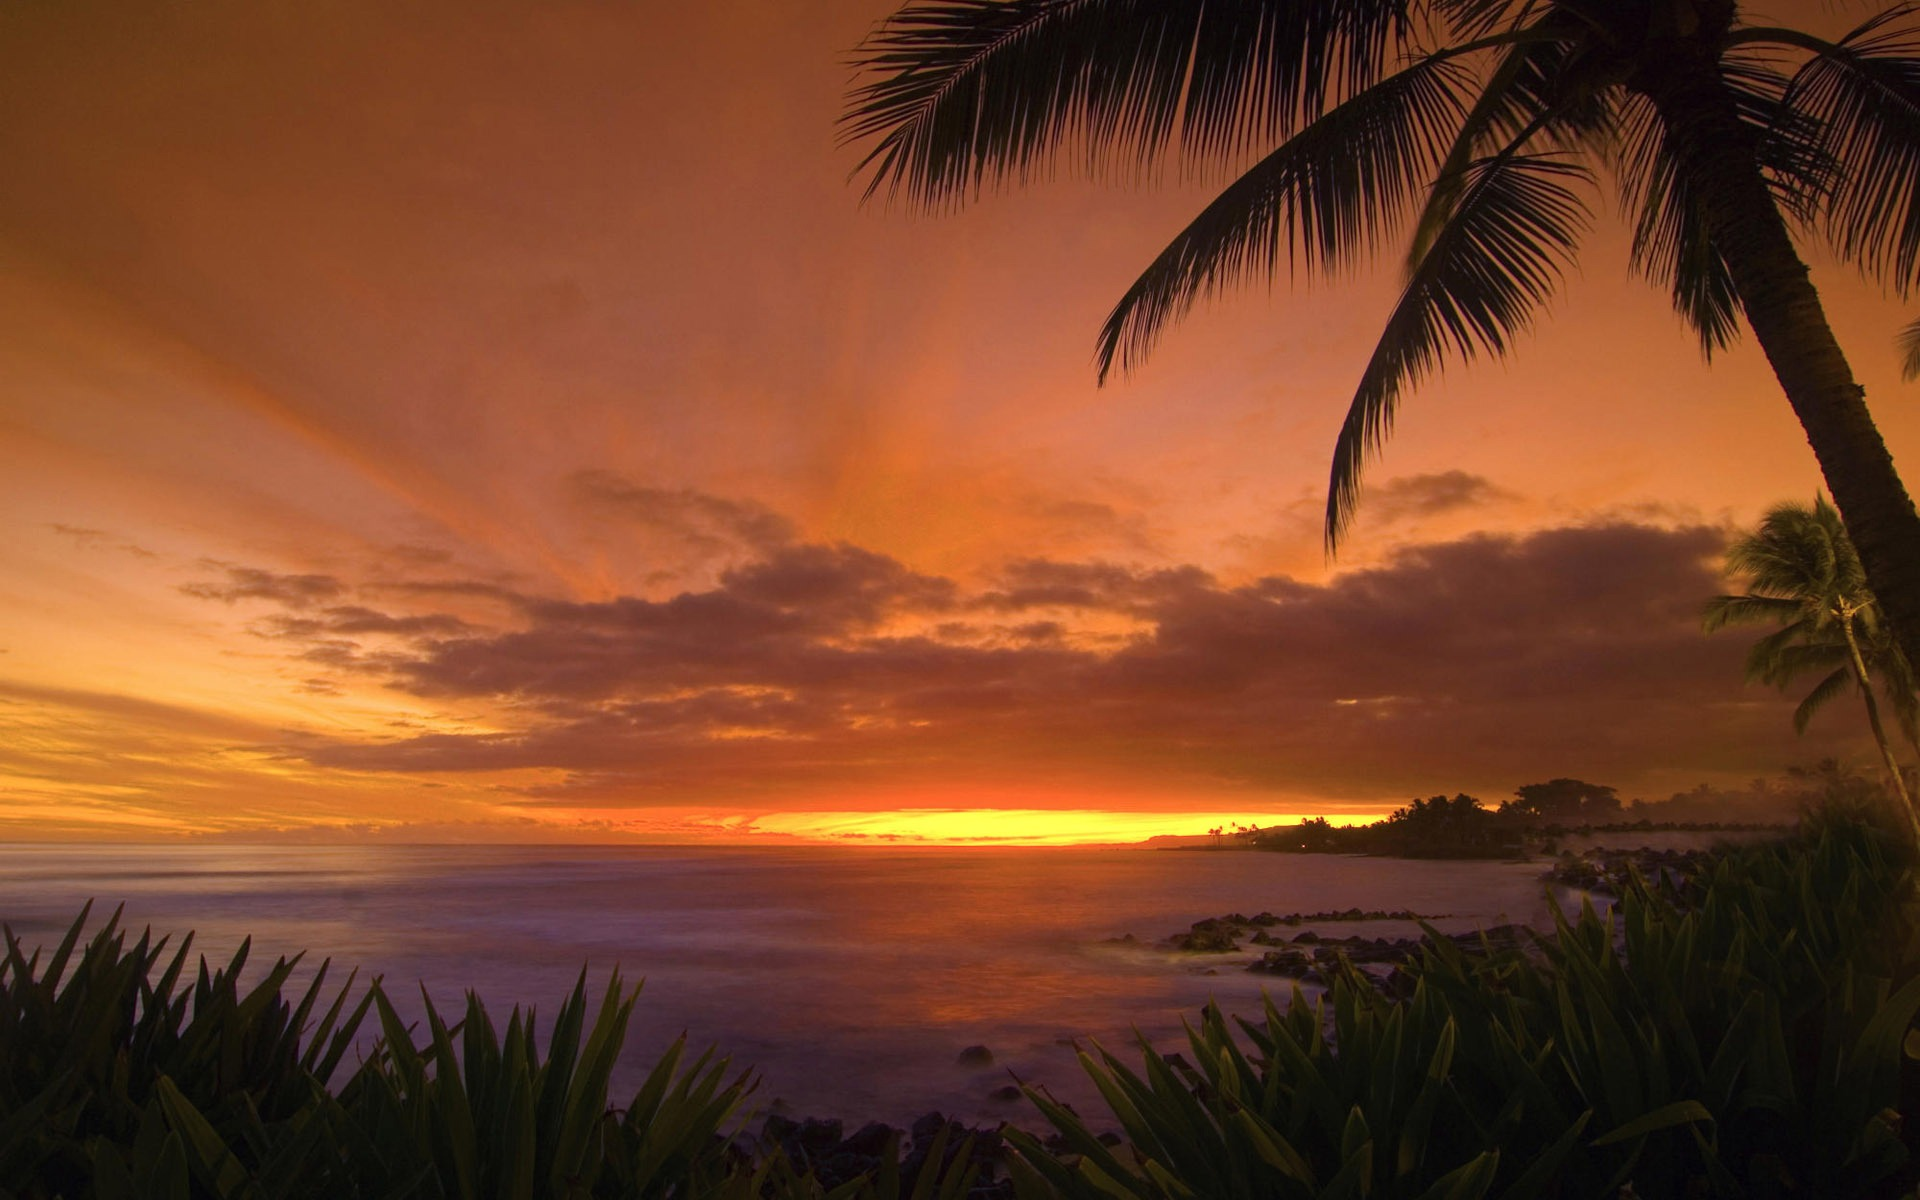 tropical-sunset-1920-1200-3910